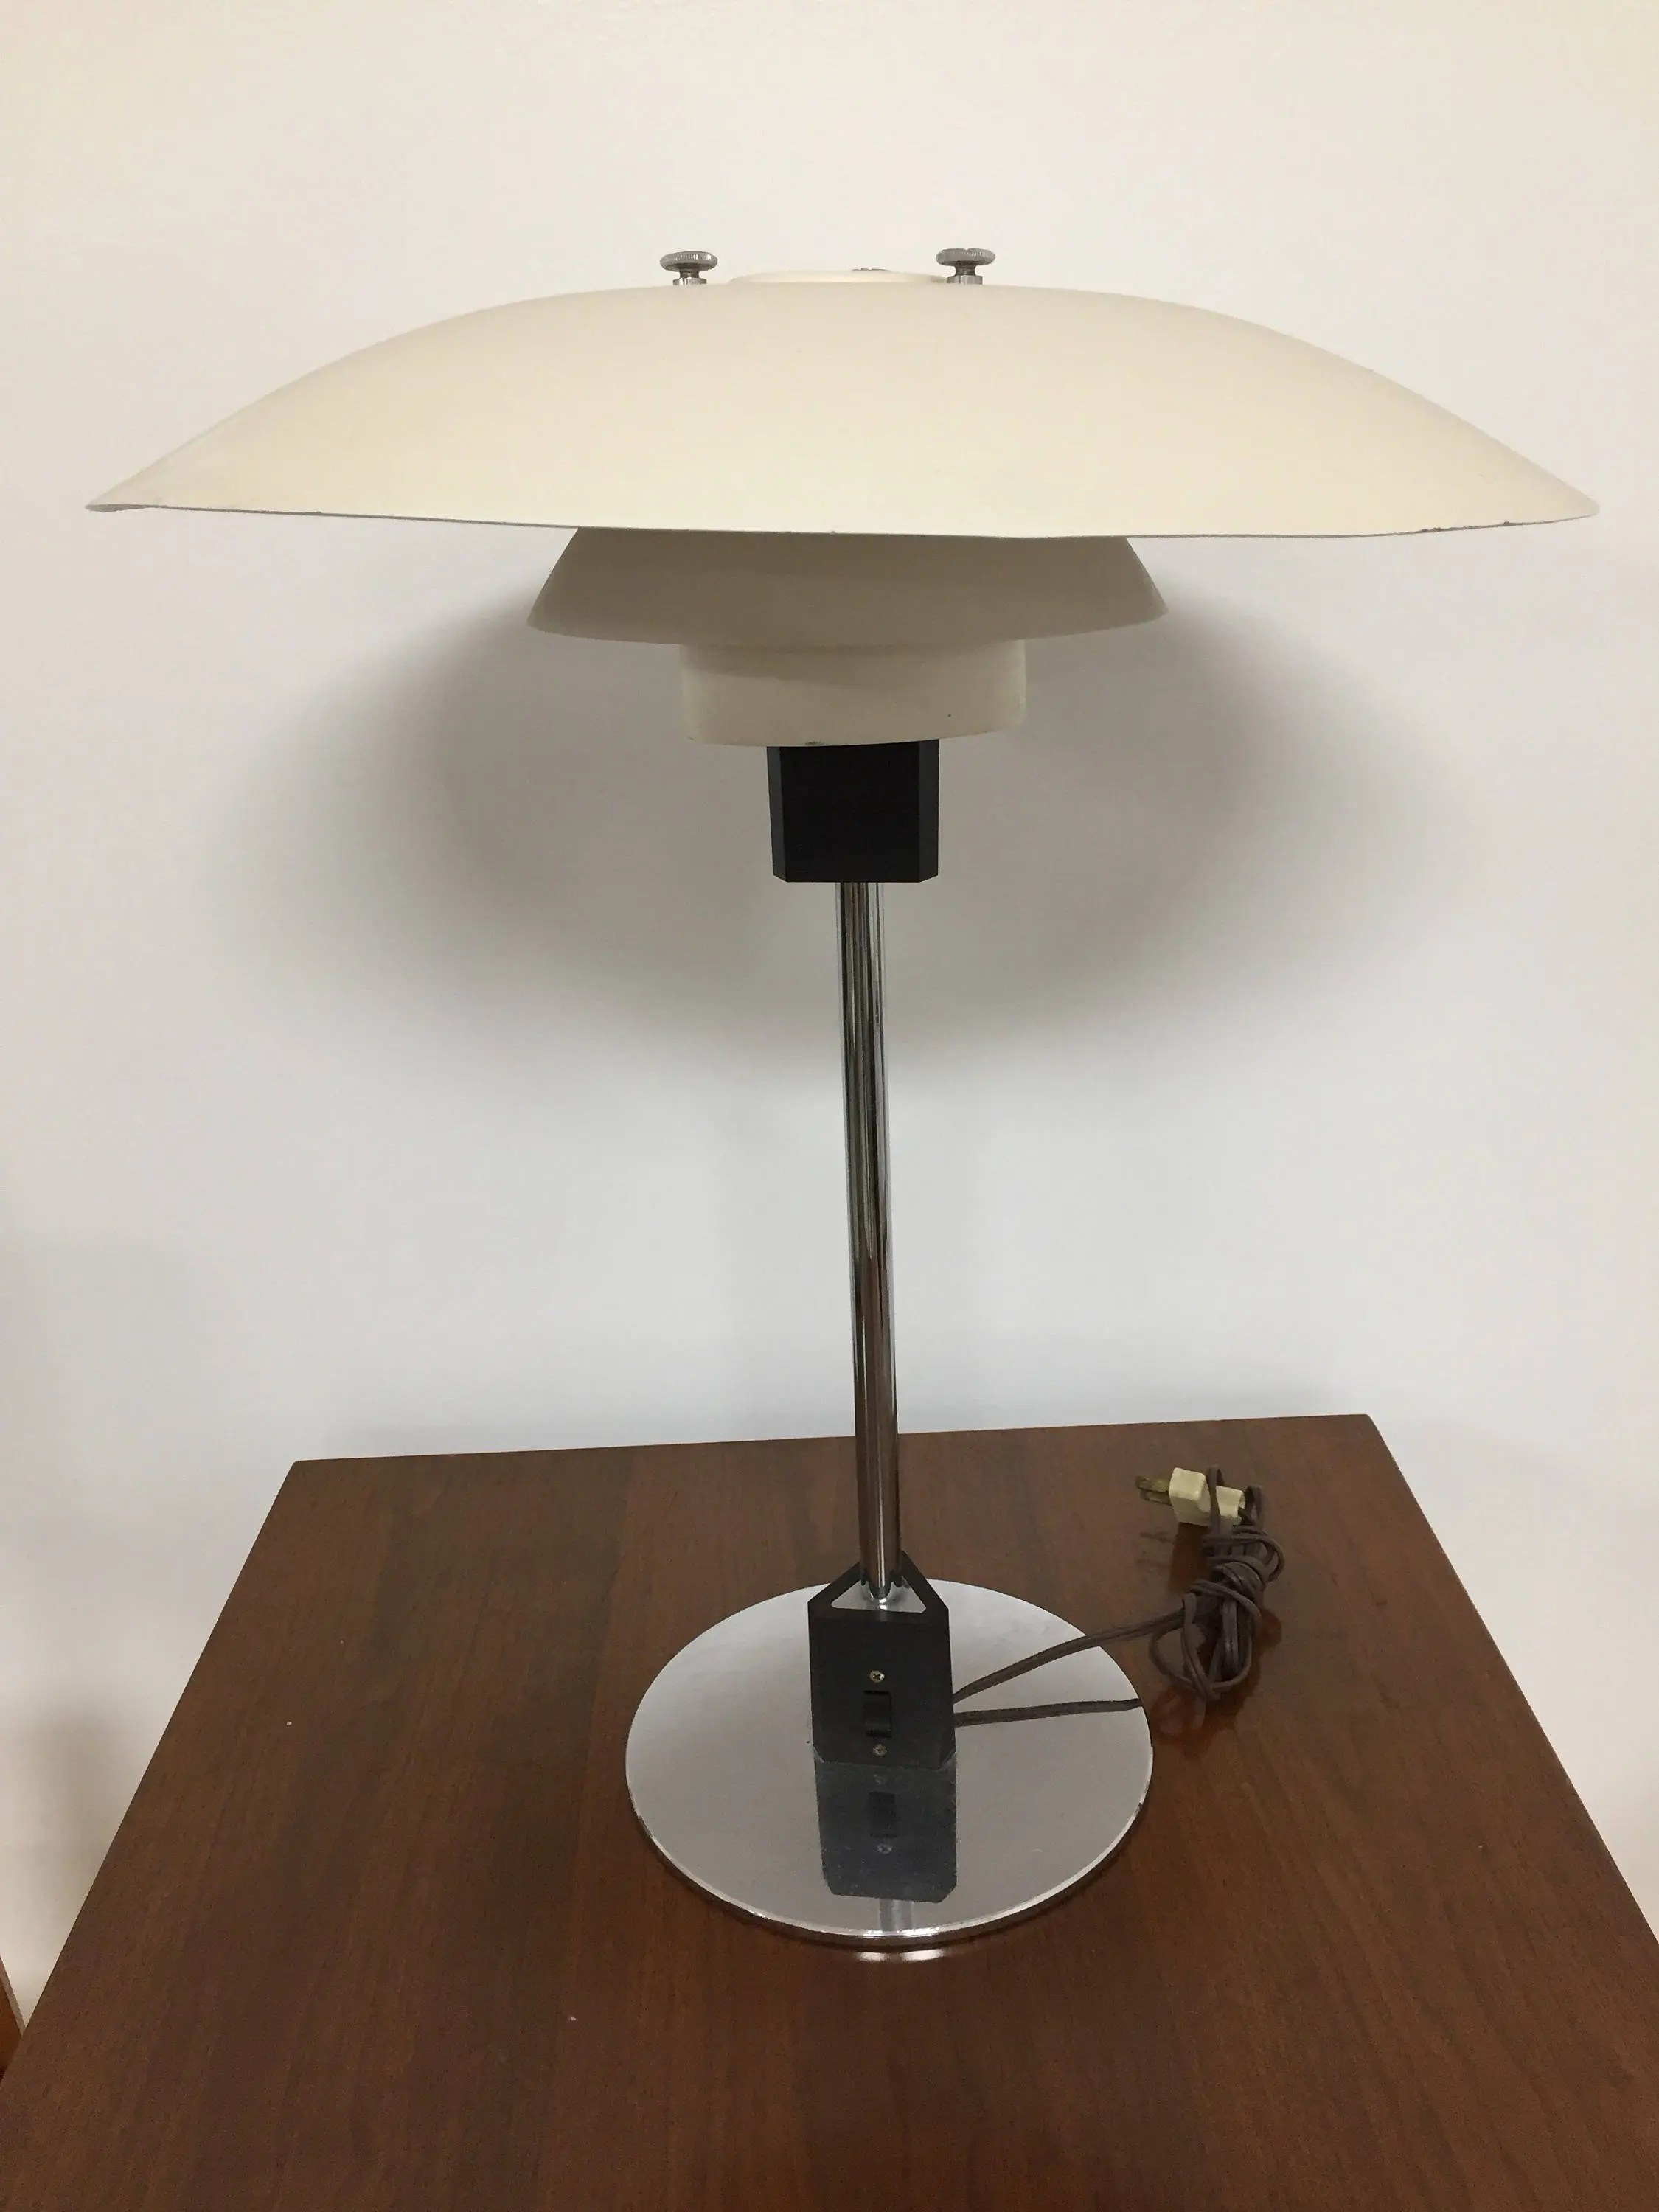 Louis Poulsen Ph 3 2 Ph 3 2 Table Lamp Designed By Poul Henningsen For Louis Poulsen